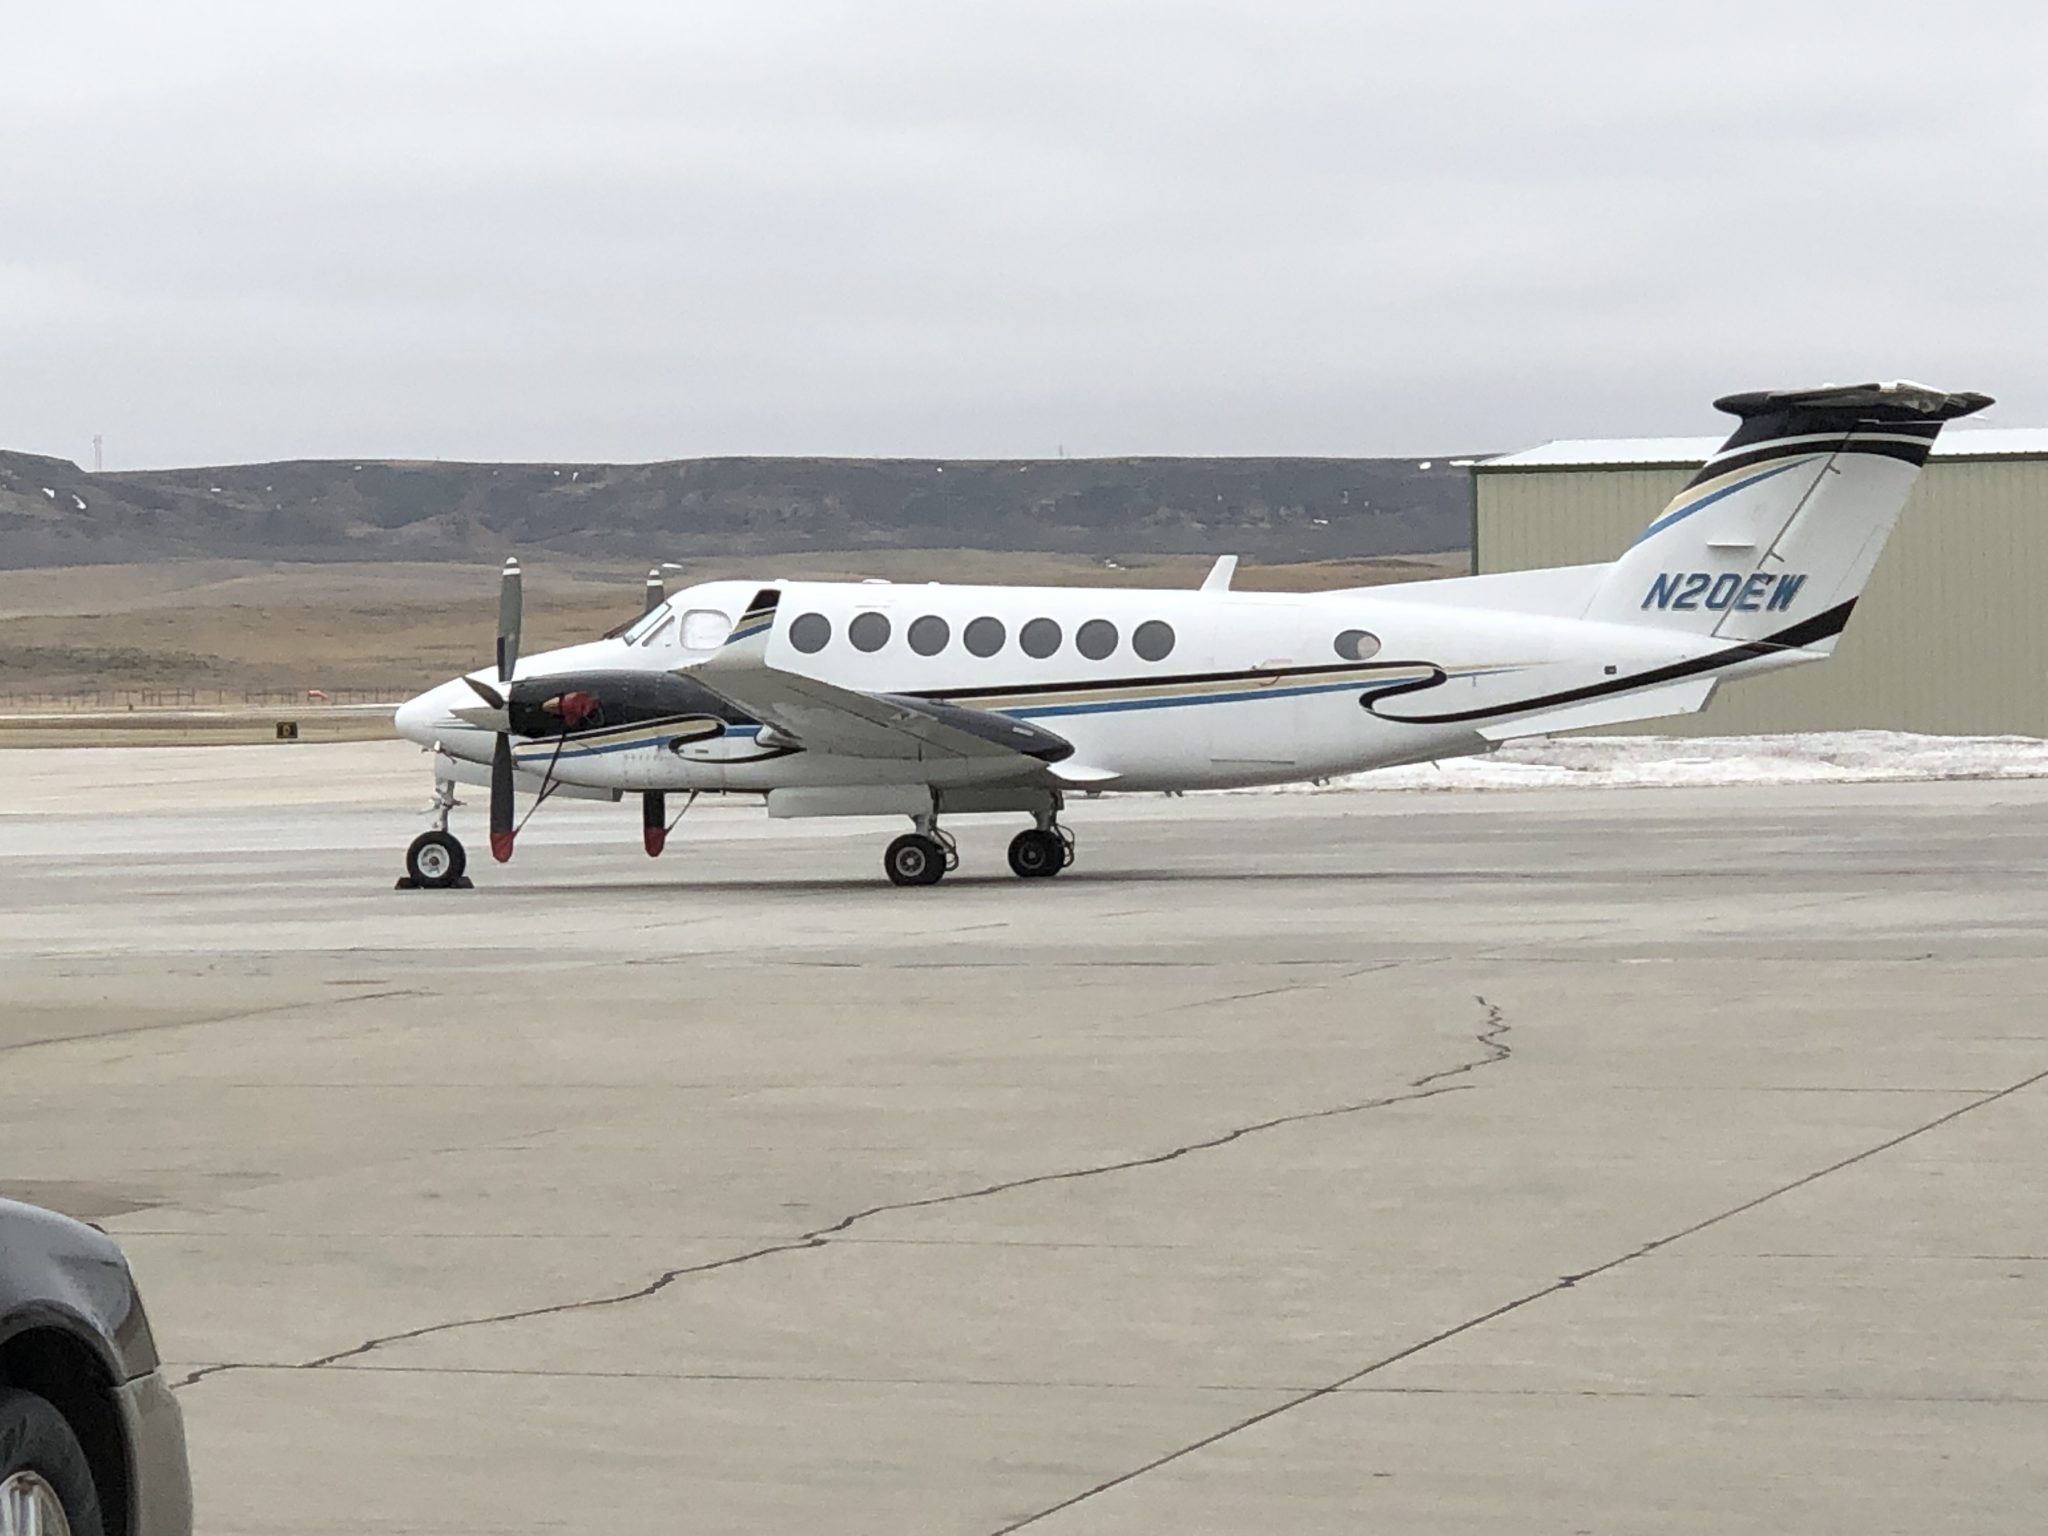 Hoops' King Air B300 Aircraft which is Owned by Triple H Aviation LLC (a Hoops company) at the Gillette Campbell County Airport in 2019.